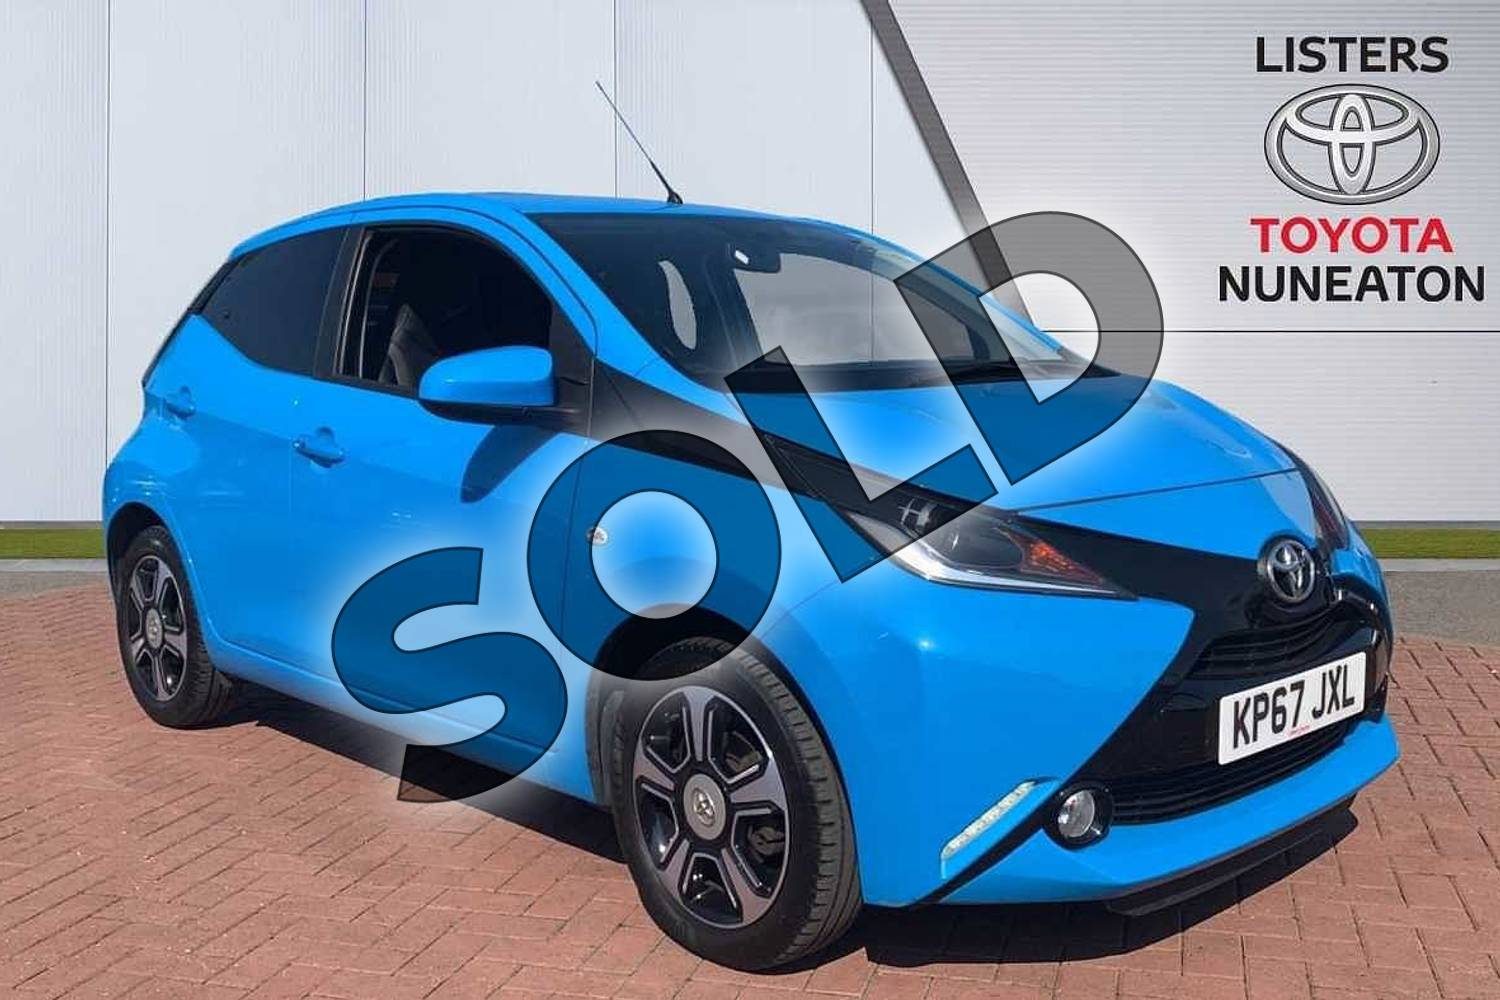 2017 Toyota AYGO Hatchback Special Editions 1.0 VVT-i X-Clusiv 3 5dr in Blue at Listers Toyota Nuneaton